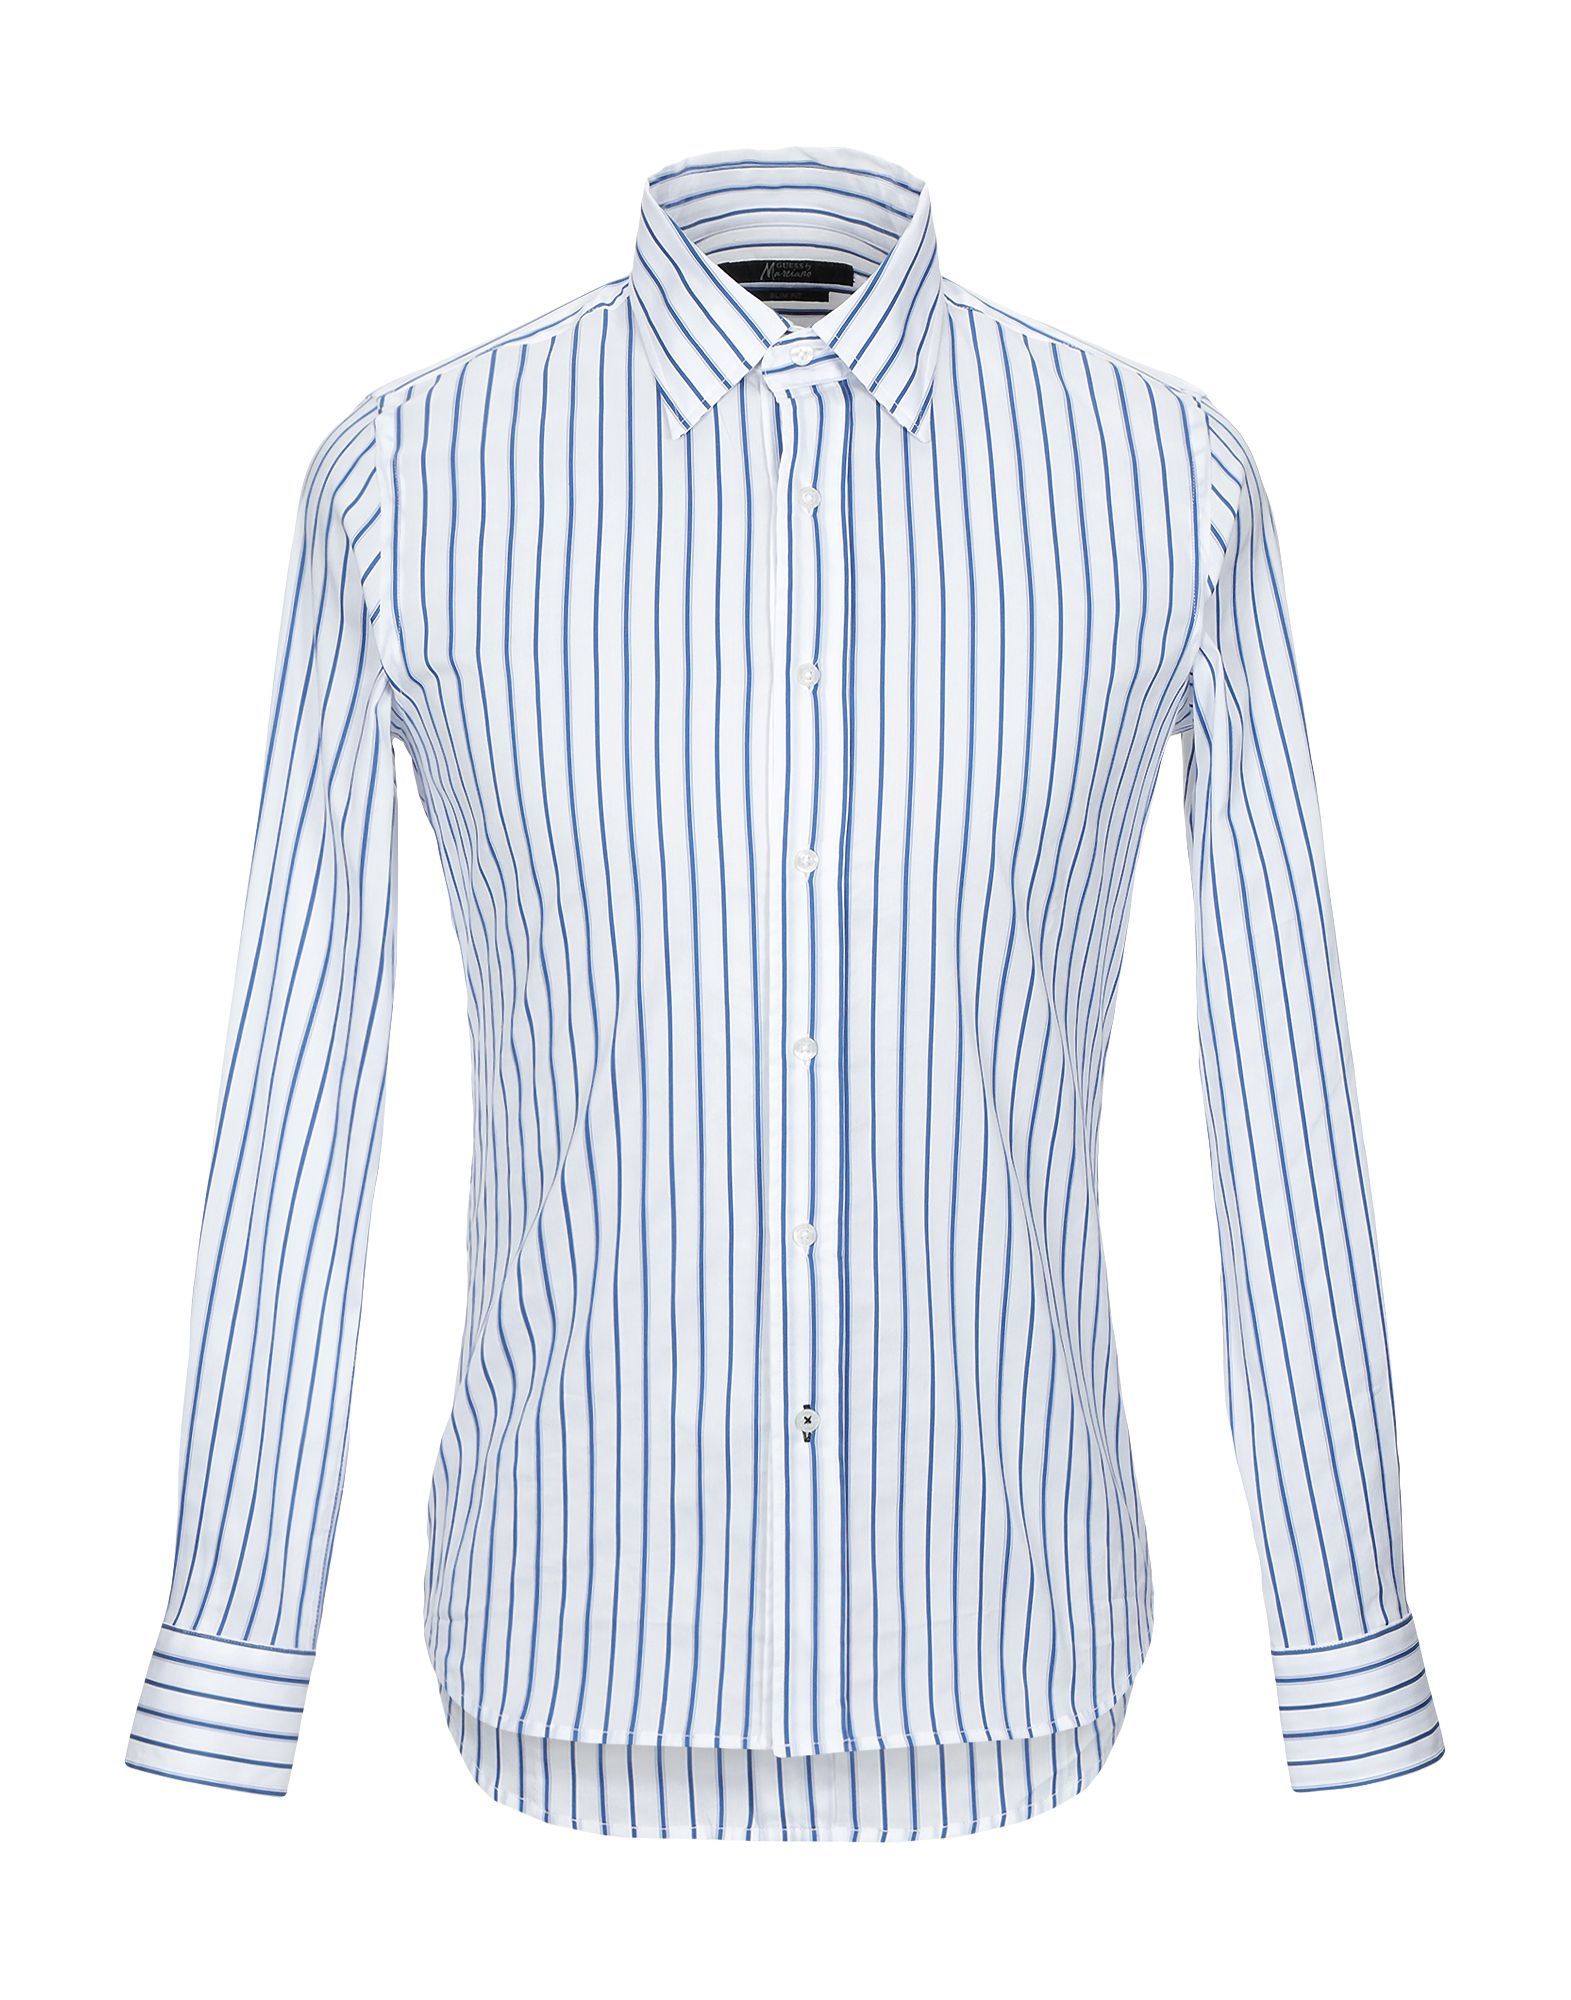 GUESS BY MARCIANO Pубашка marciano guess 71g746 8220z a996